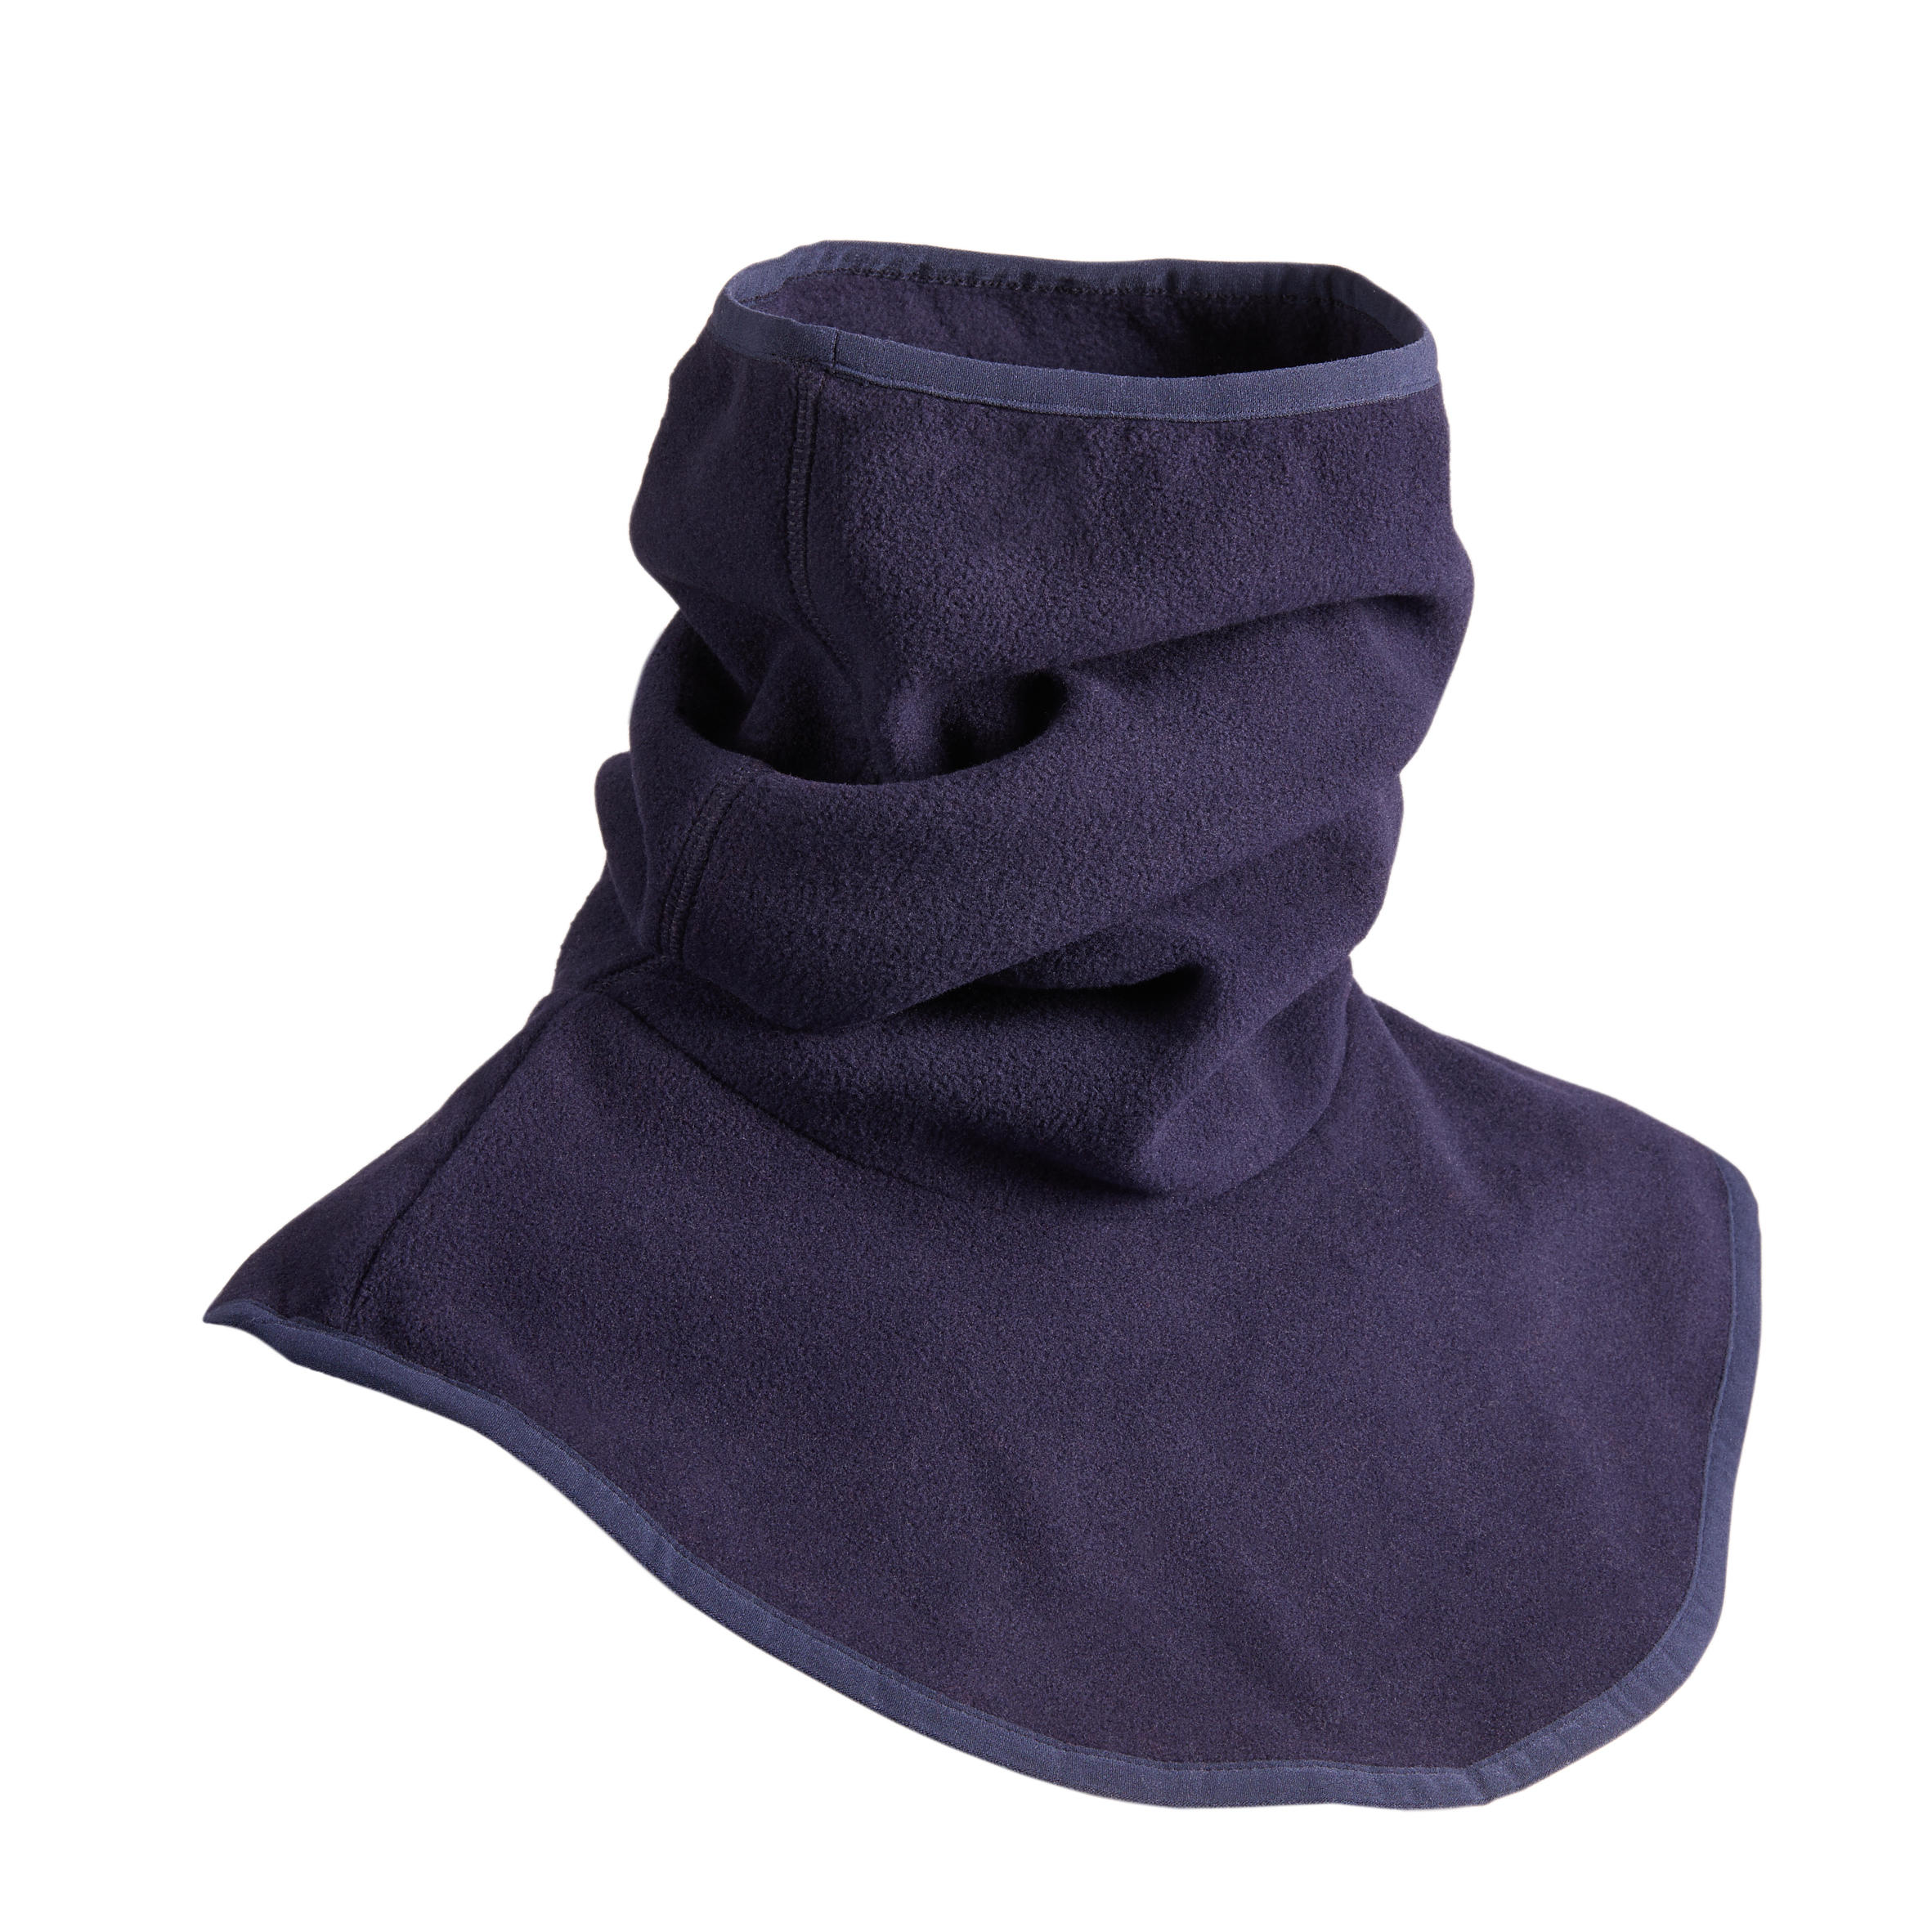 Yelawolf Winter Neck Warmer Unisex Thermal Fleece Neck Gaiter Face Mask For Cold Weather